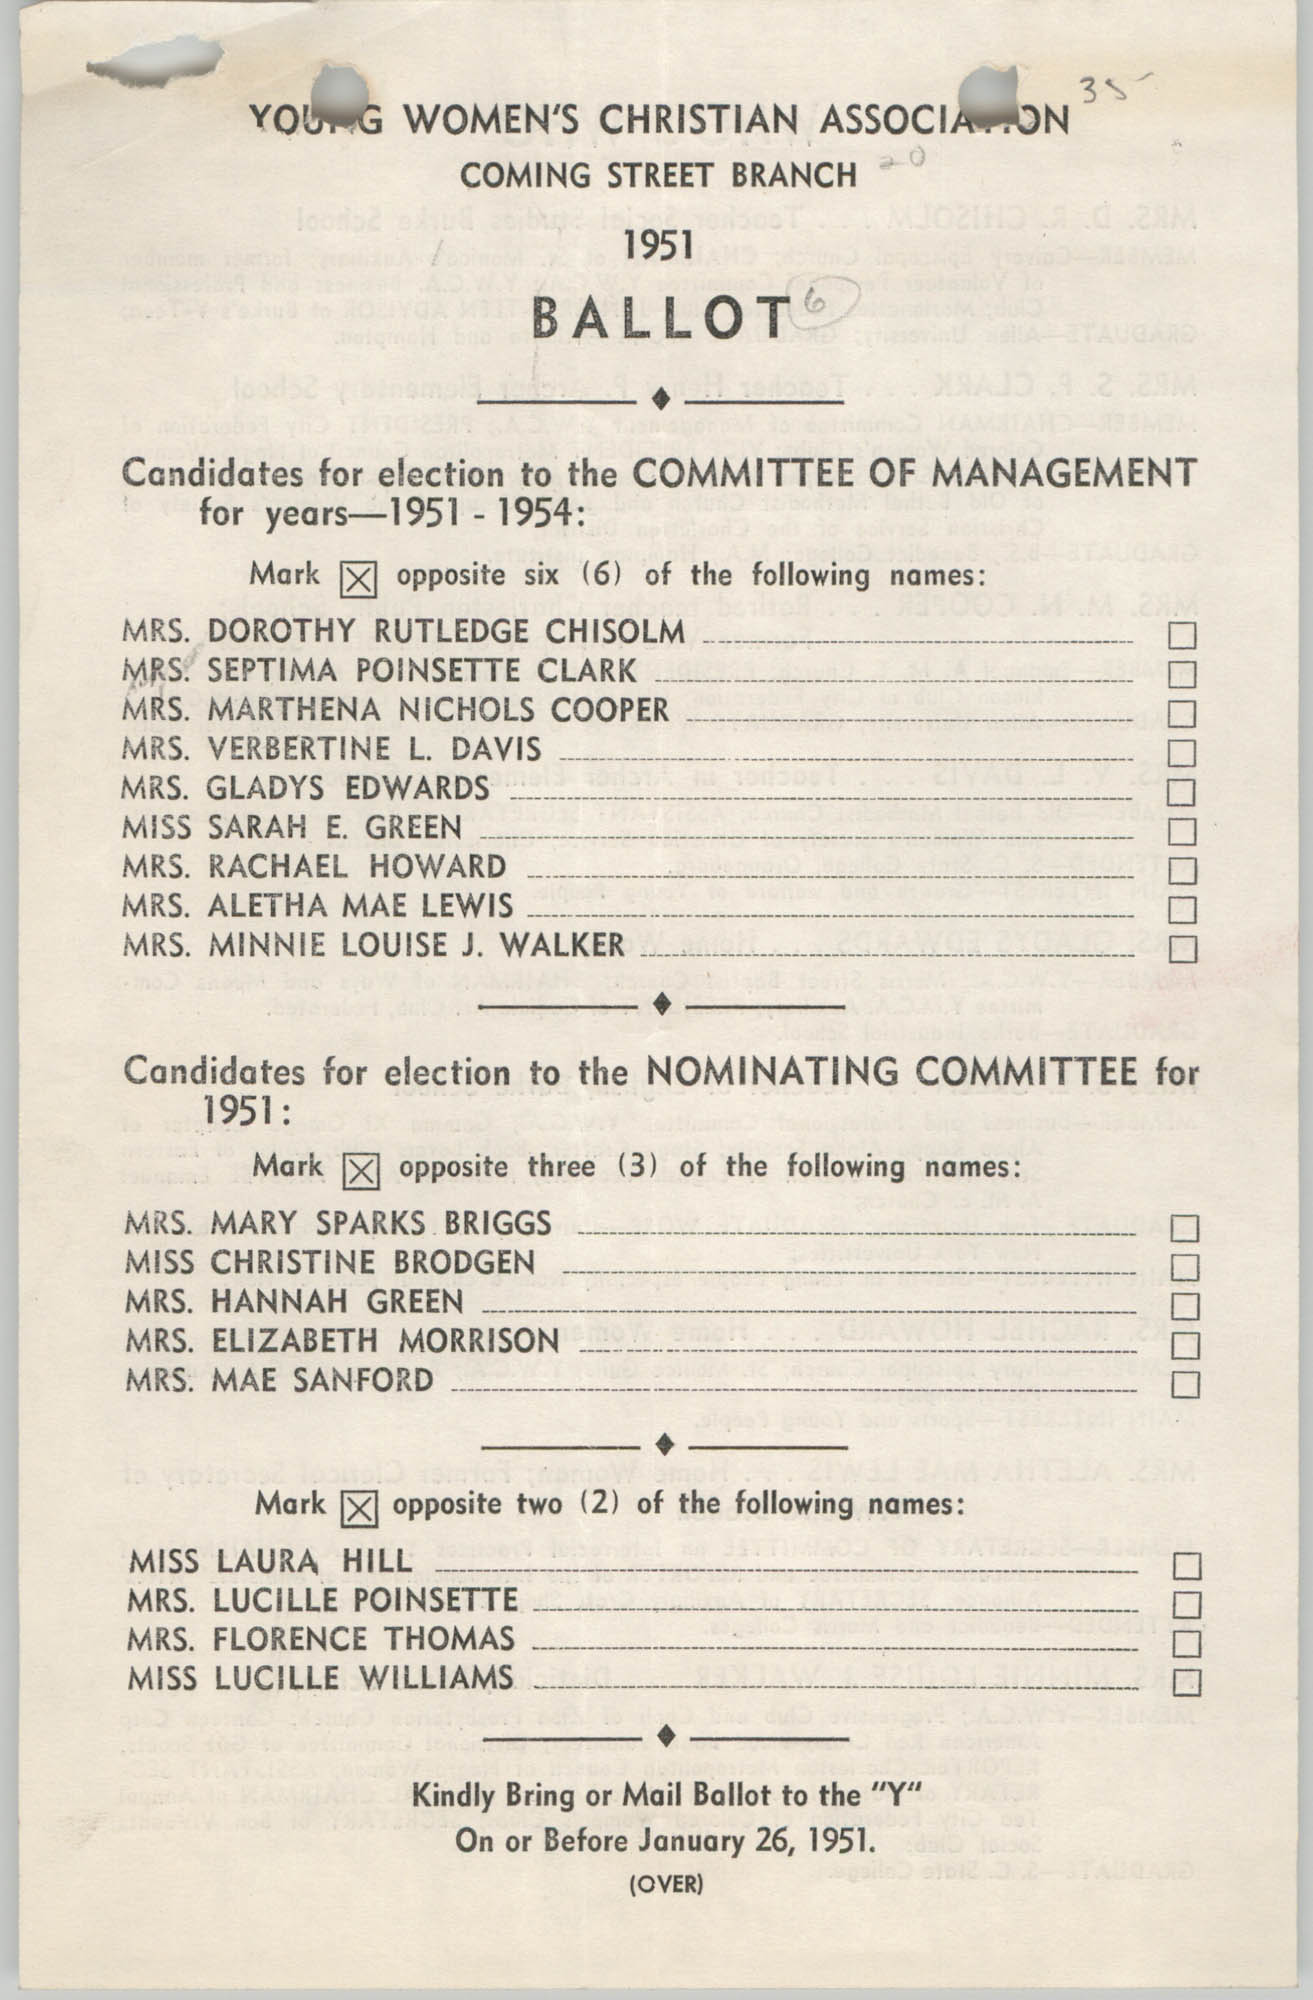 Coming Street Y.W.C.A. Ballot, 1951